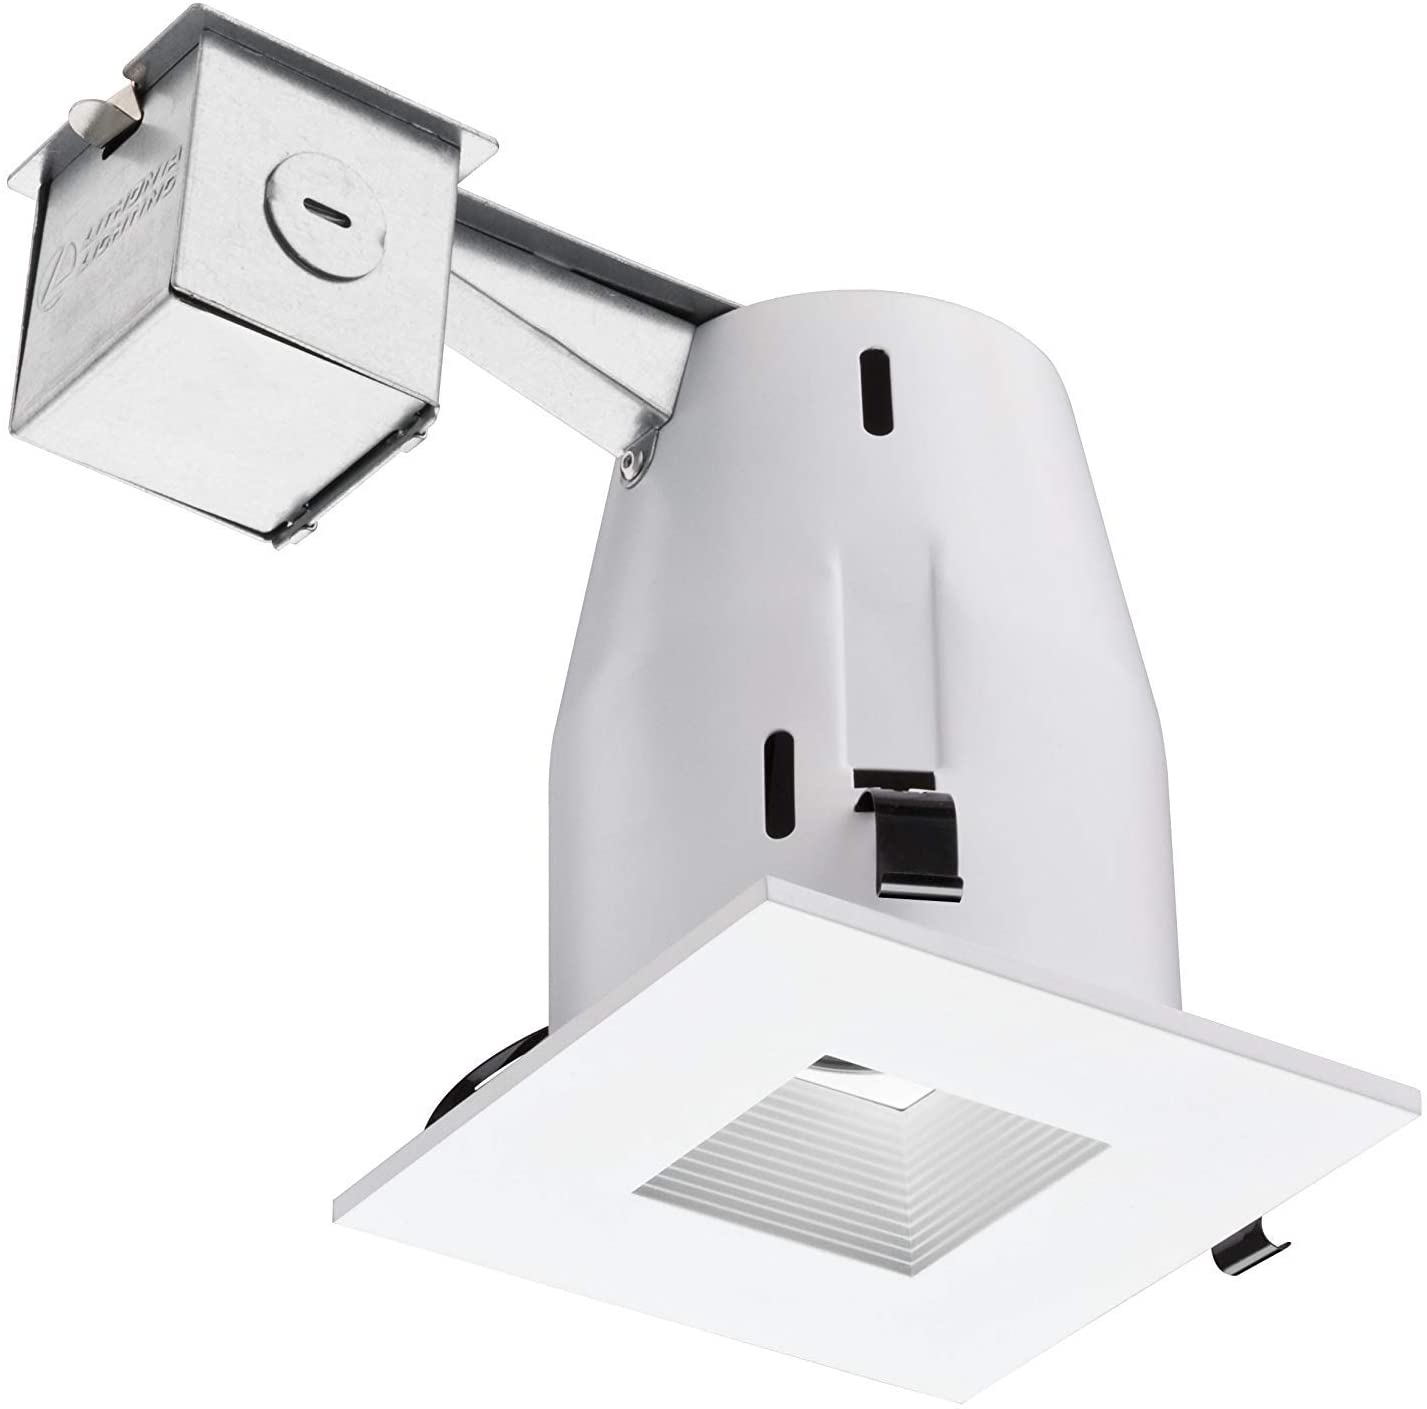 Lithonia Lighting LK4SQMW M6 Square 4 Inch Kit with Halogen Lamp Included in White